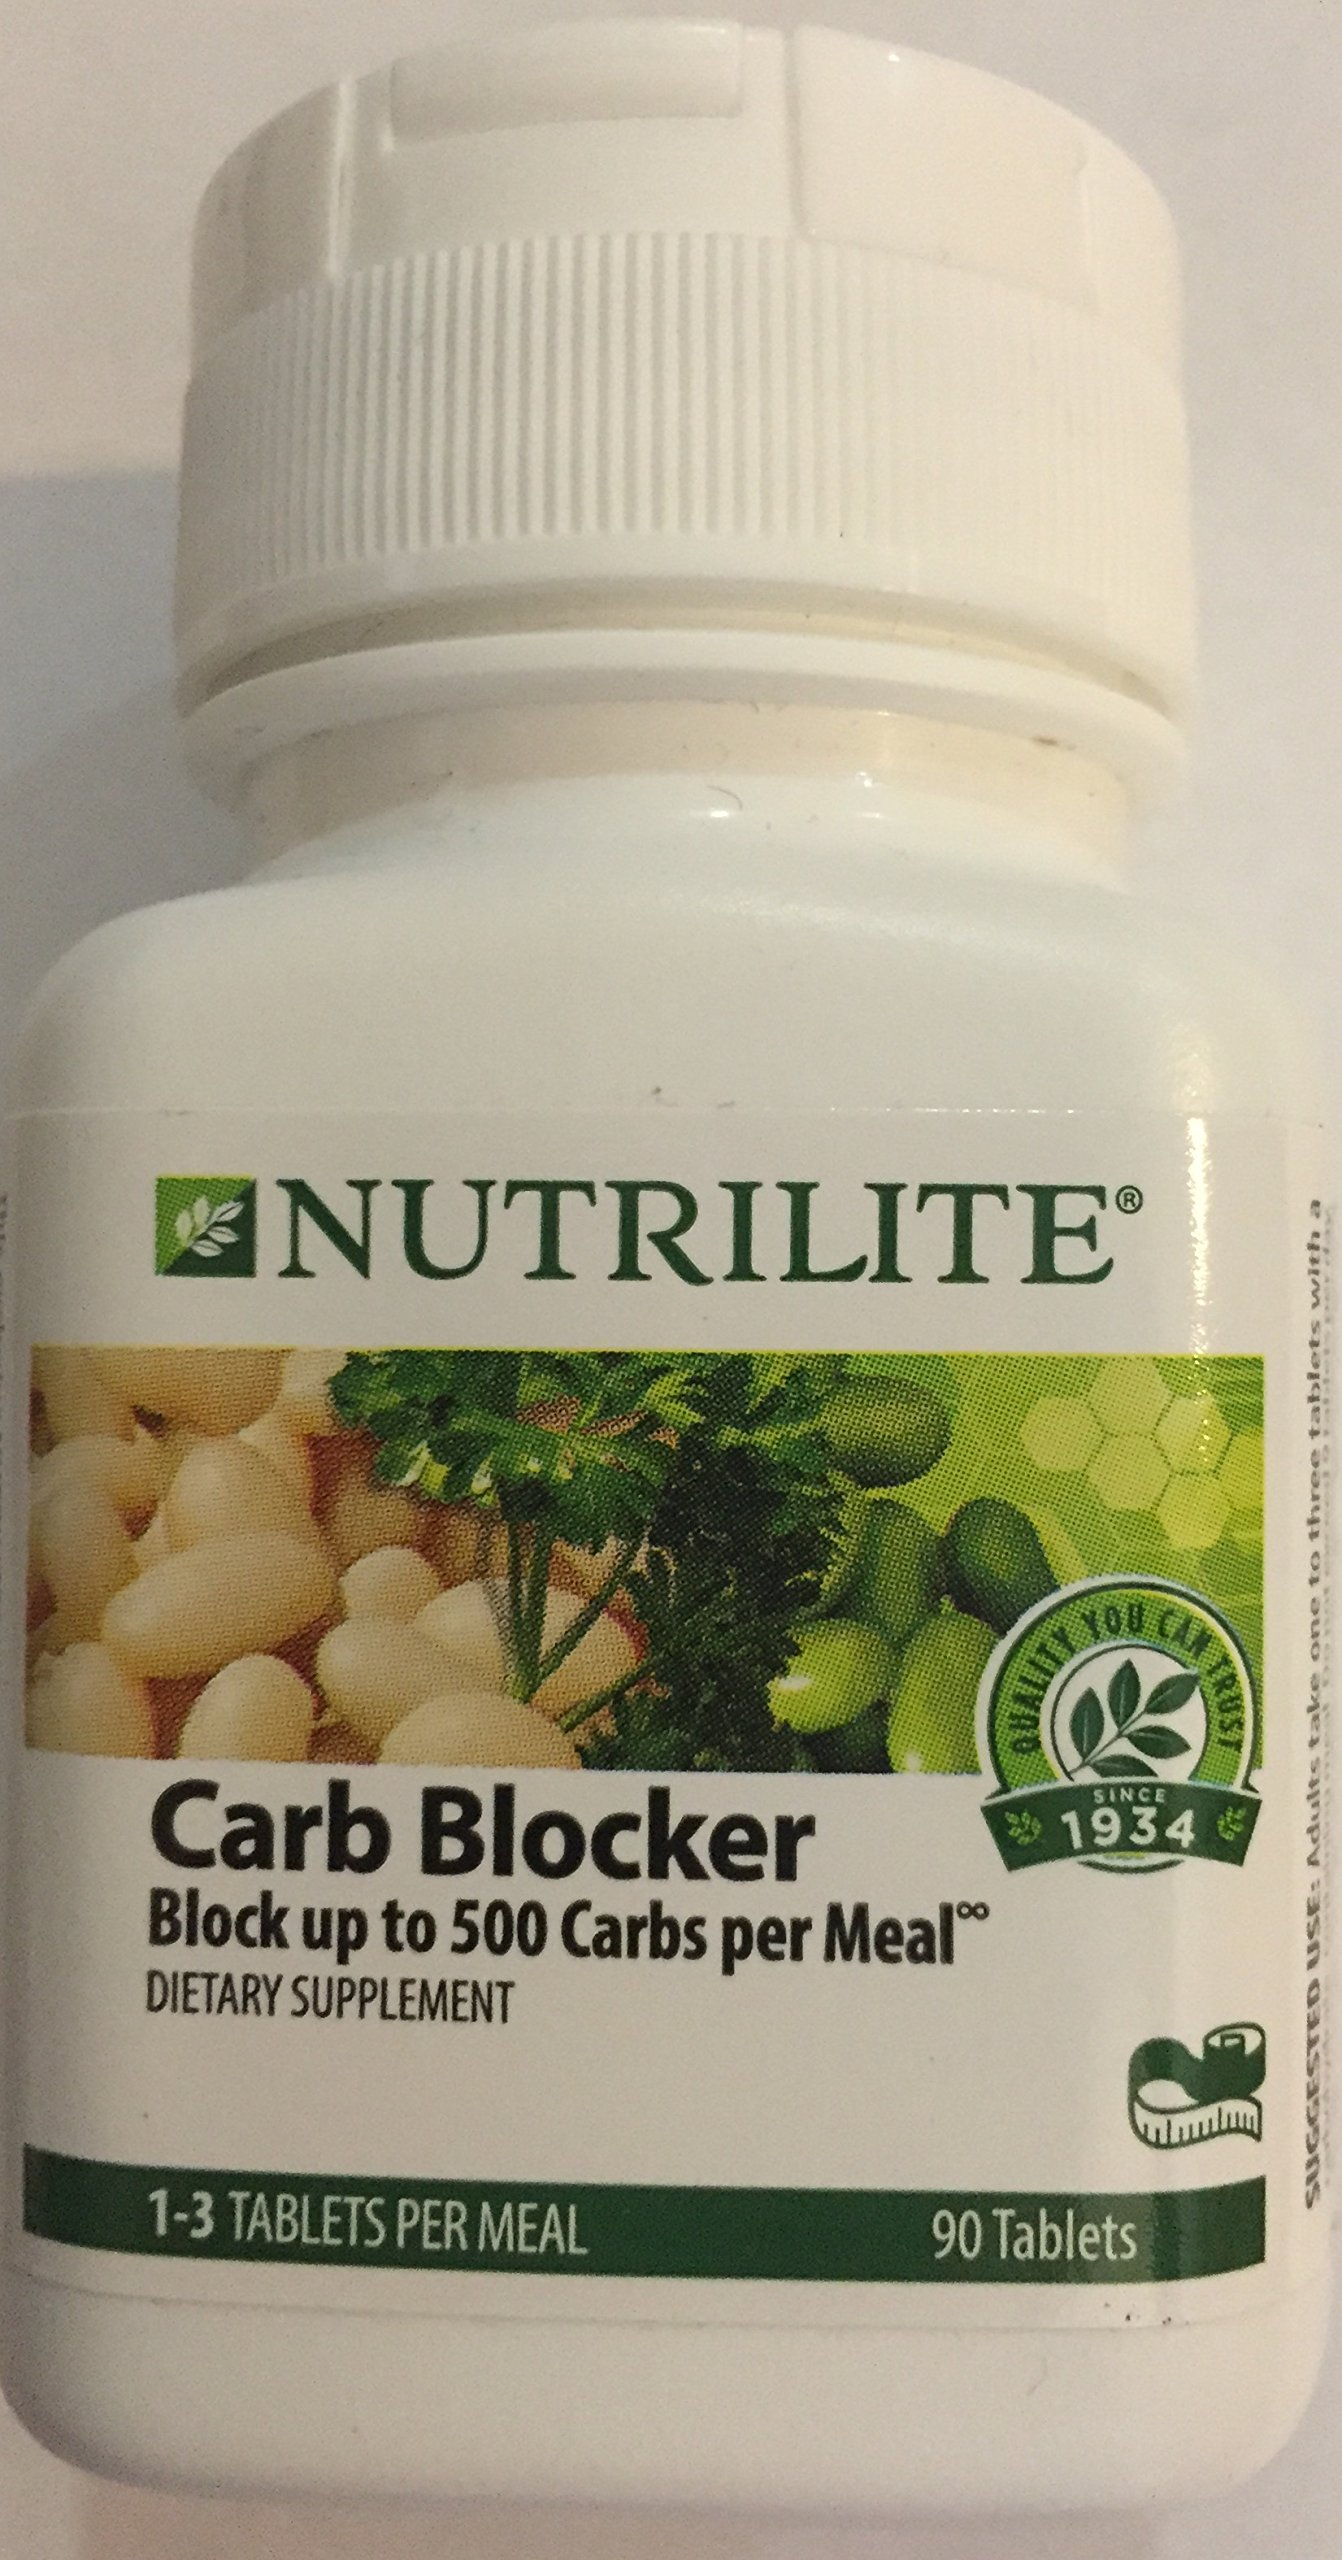 NUTRILITE Carb Blocker - 90 Count